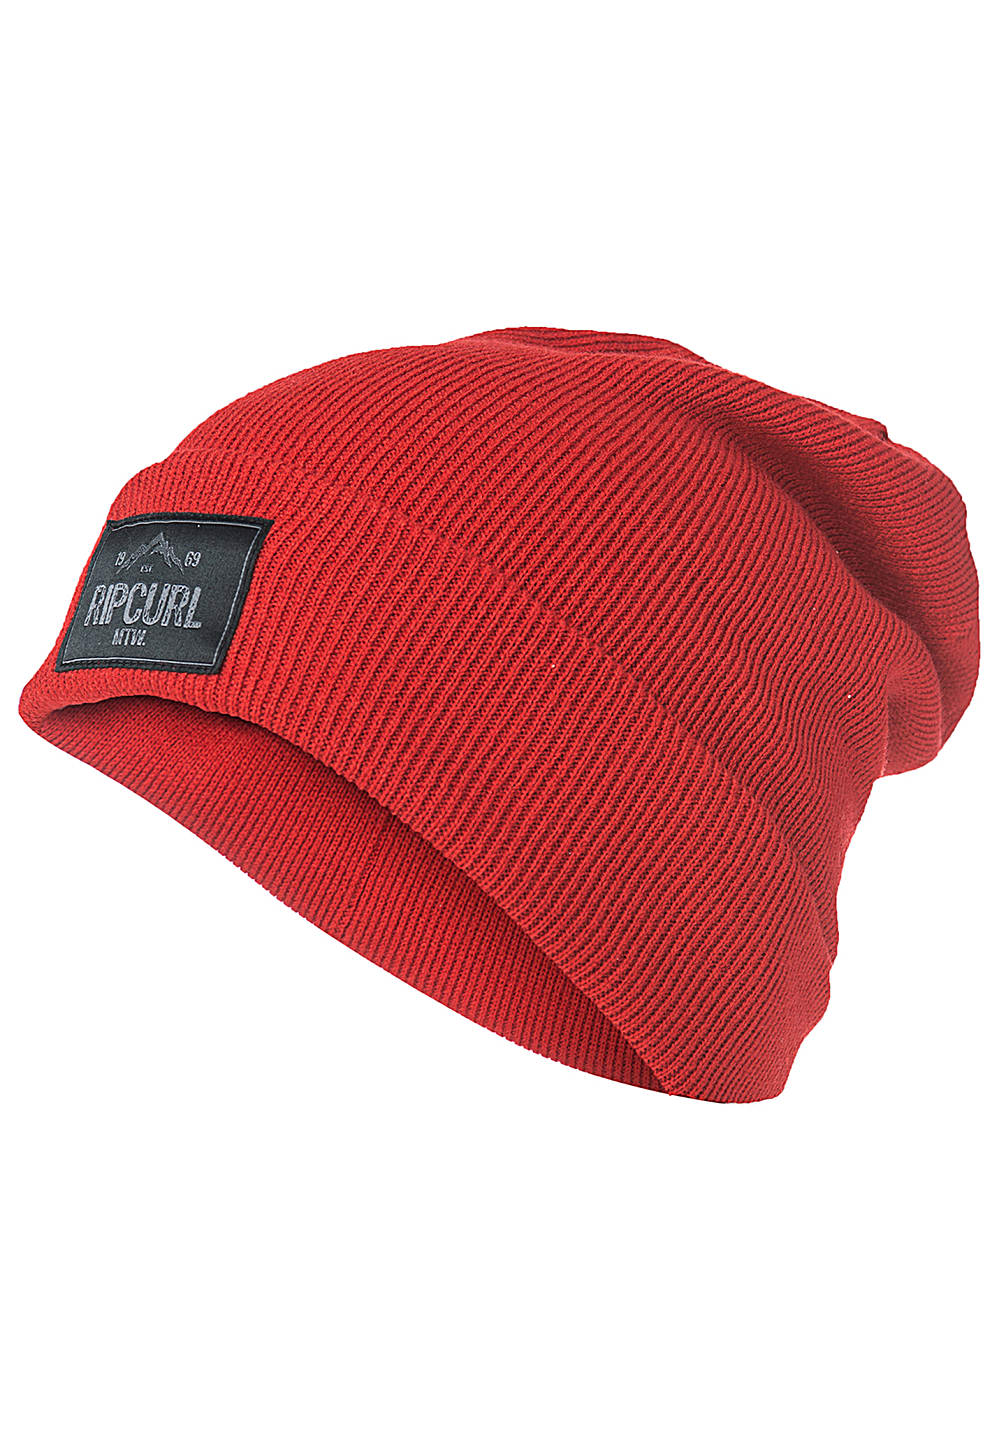 b193436af8a701 Rip Curl Urban - Beanie for Men - Red - Planet Sports